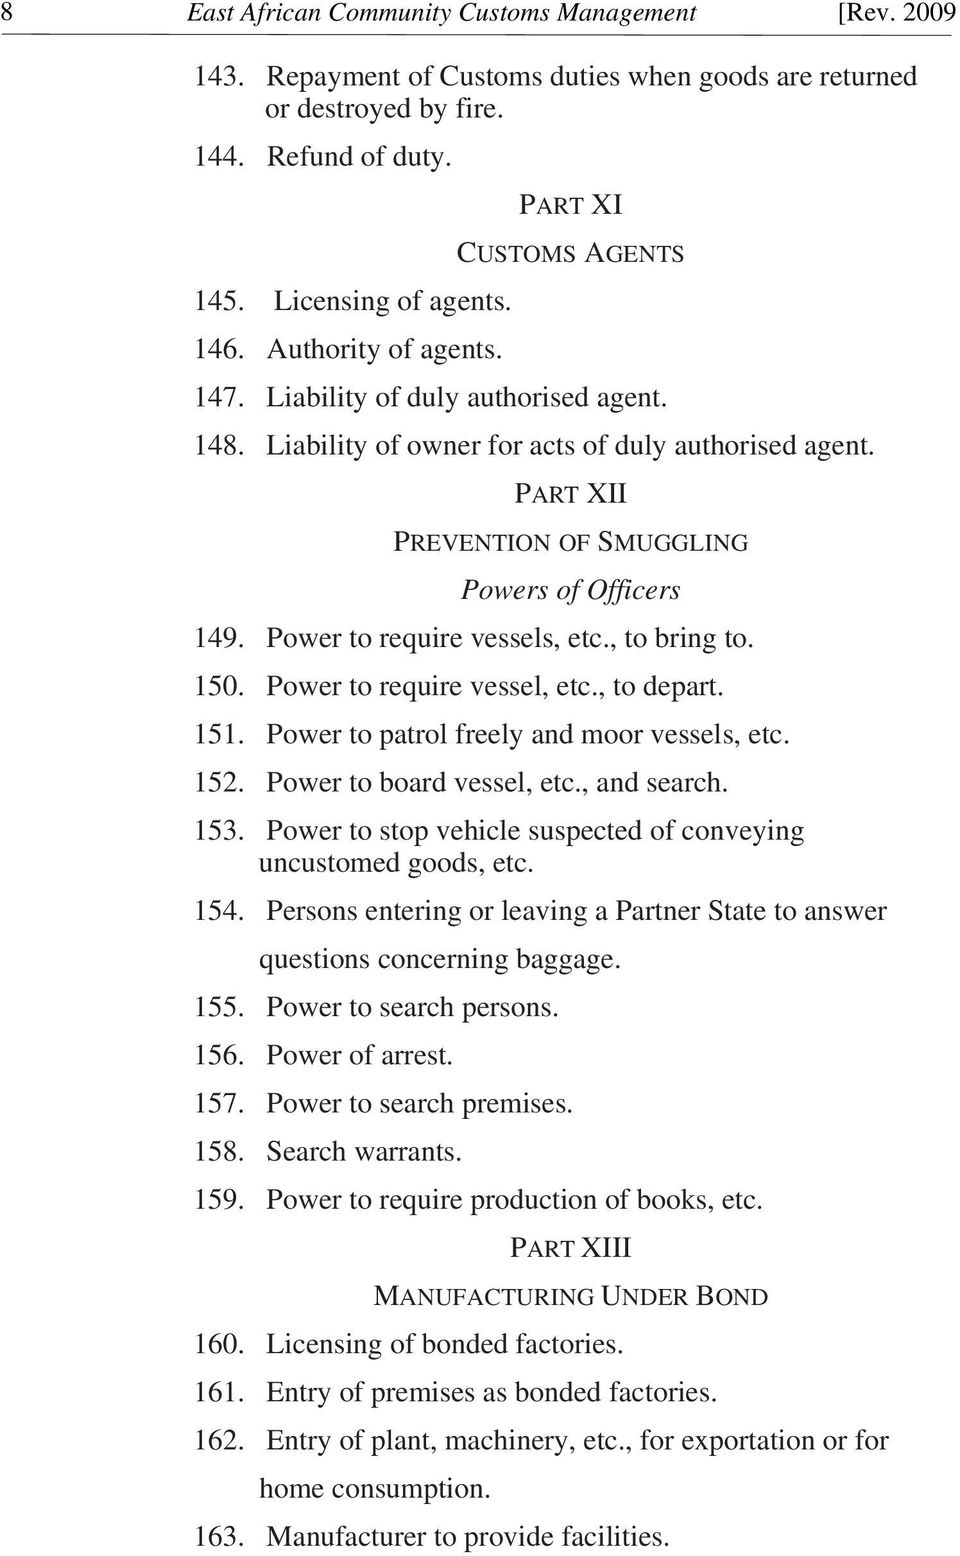 PART XII PREVENTION OF SMUGGLING Powers of Officers 149. Power to require vessels, etc., to bring to. 150. Power to require vessel, etc., to depart. 151. Power to patrol freely and moor vessels, etc.